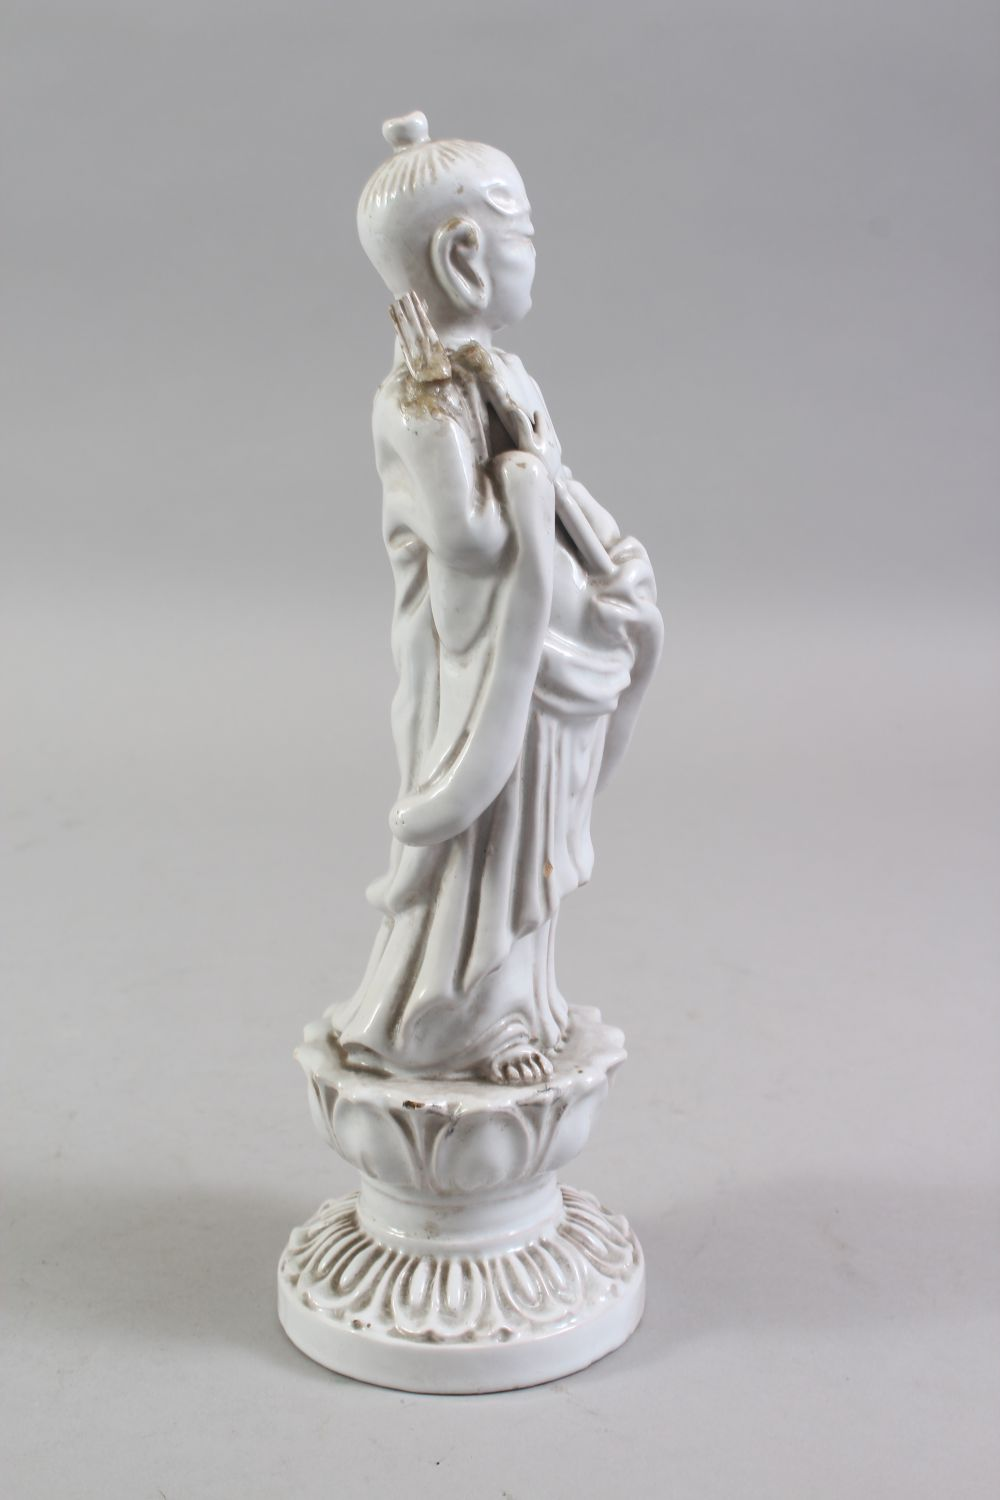 A CHINESE BLANC DE CHINE PORCELAIN FIGURE OF A BOY, standing holding a scepter, on a lotus base, - Image 2 of 6